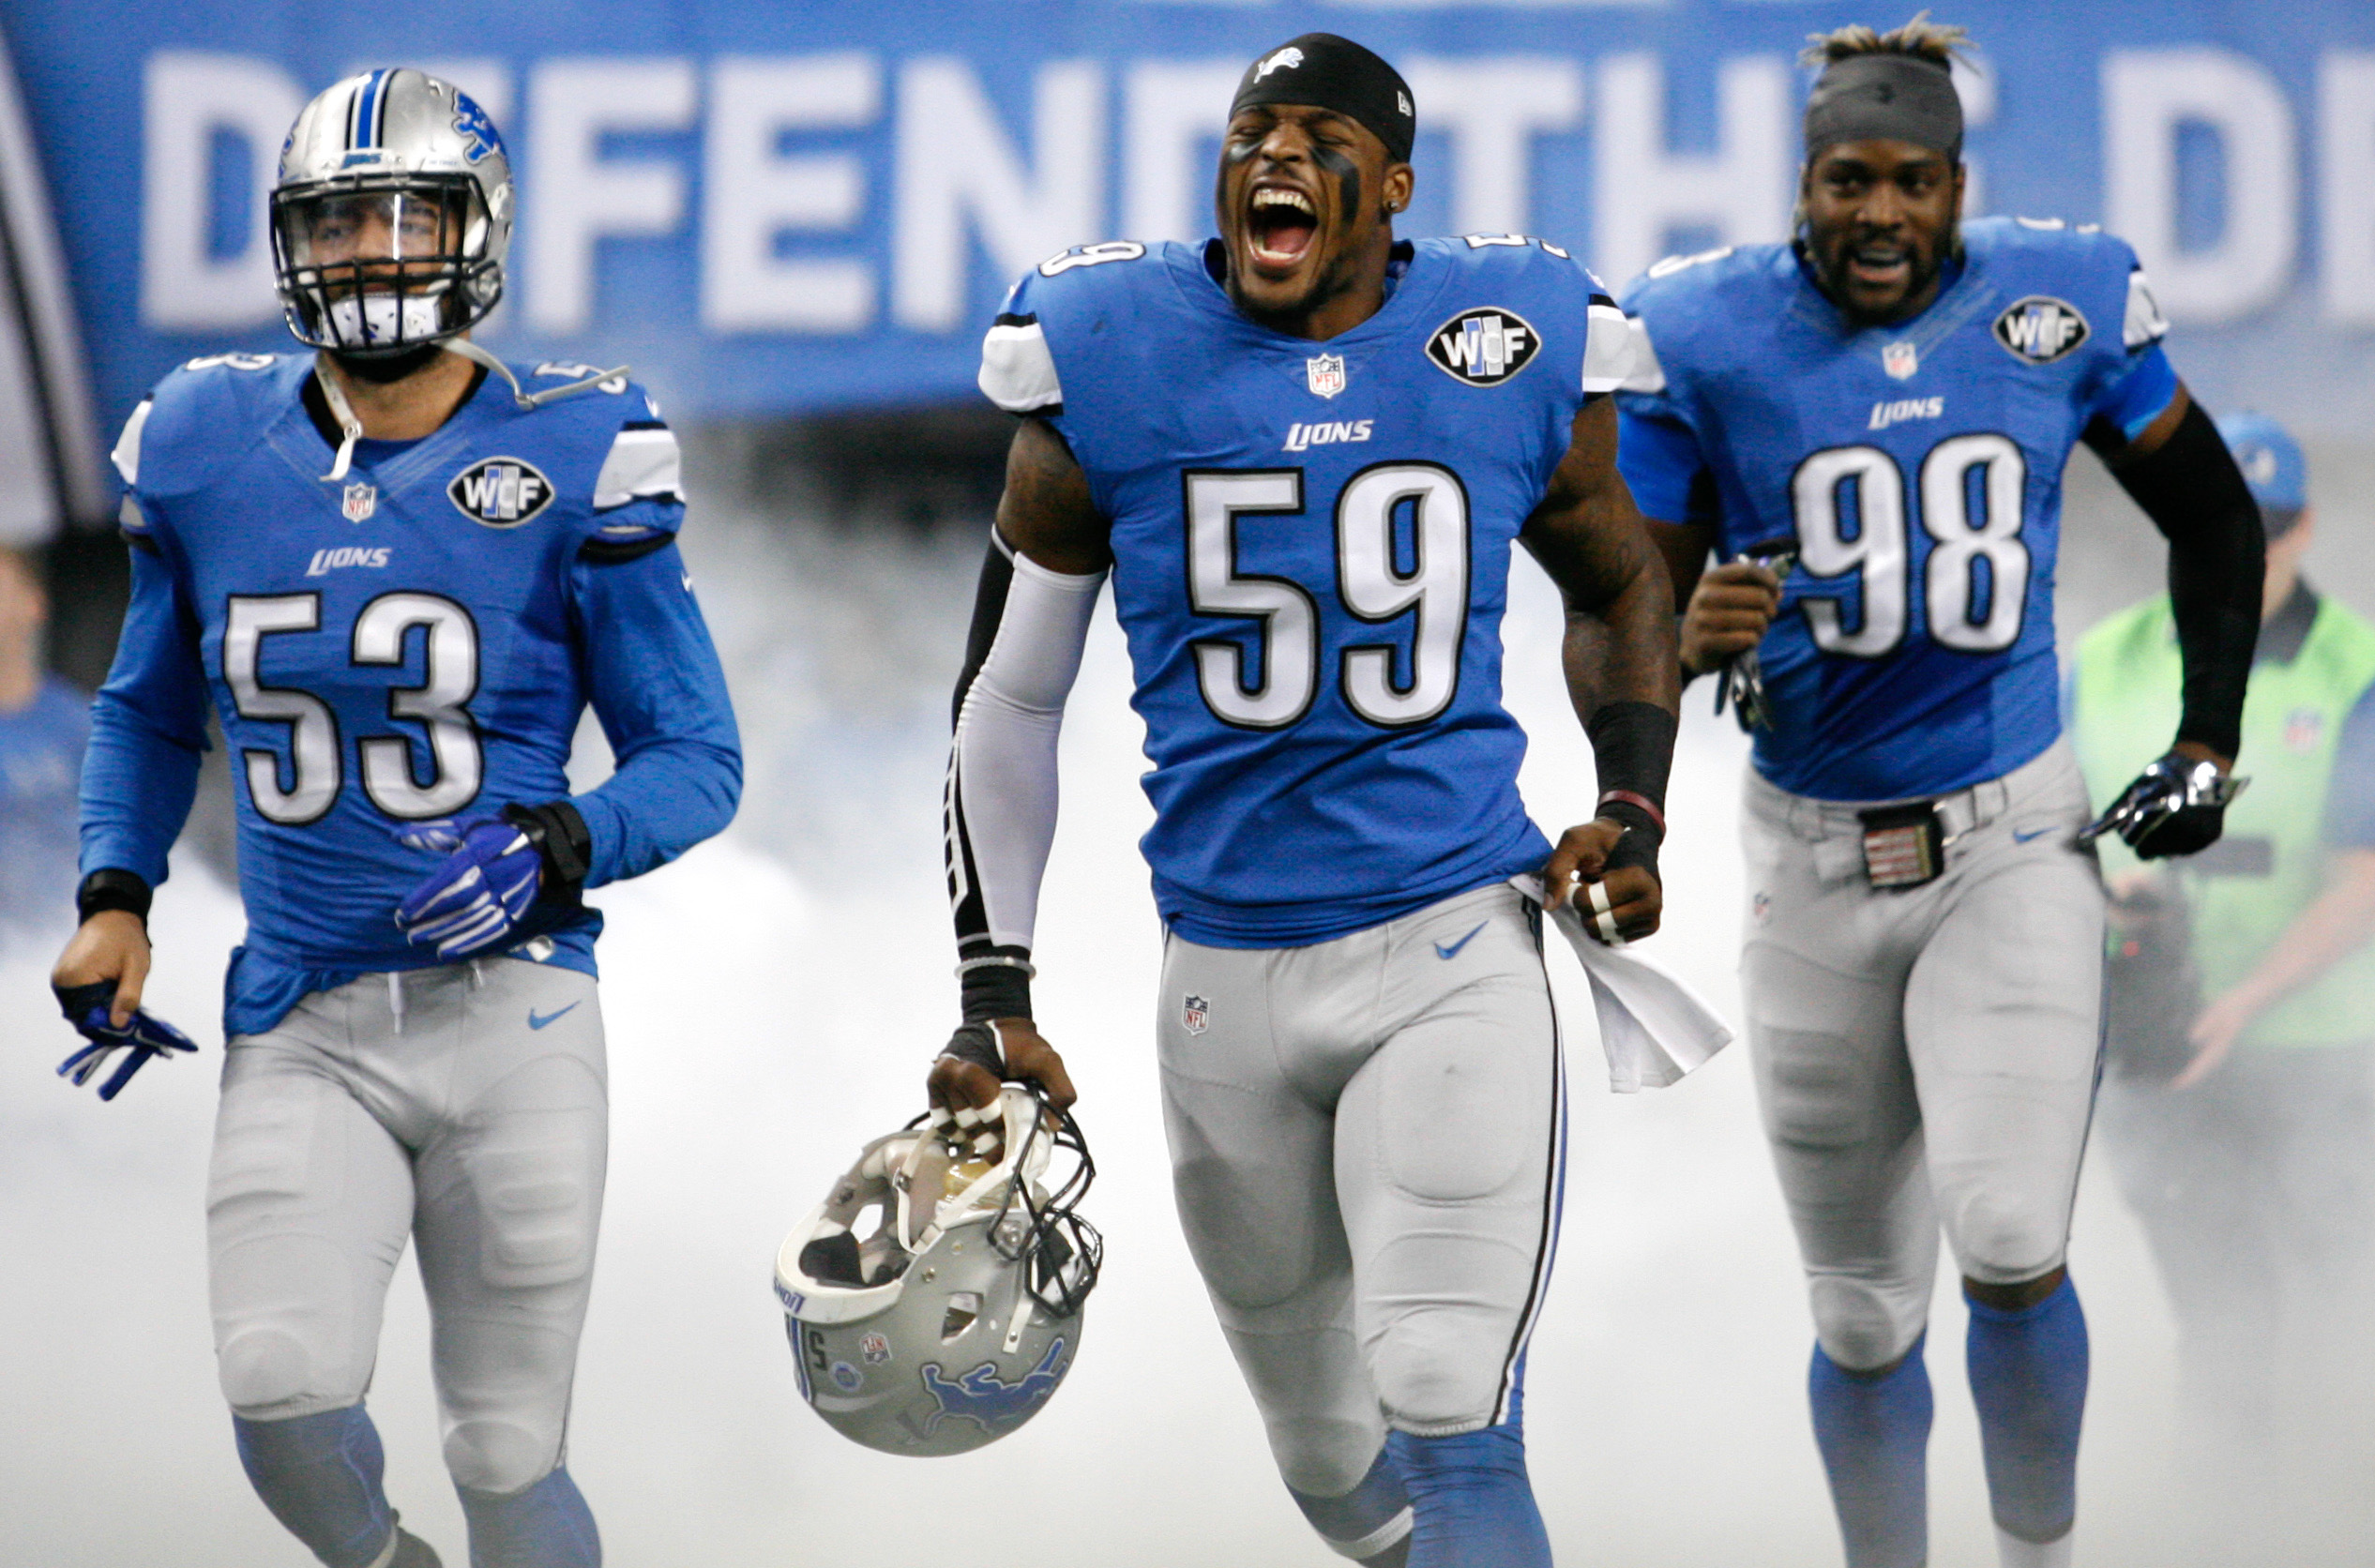 9027350-nfl-san-francisco-49ers-at-detroit-lions